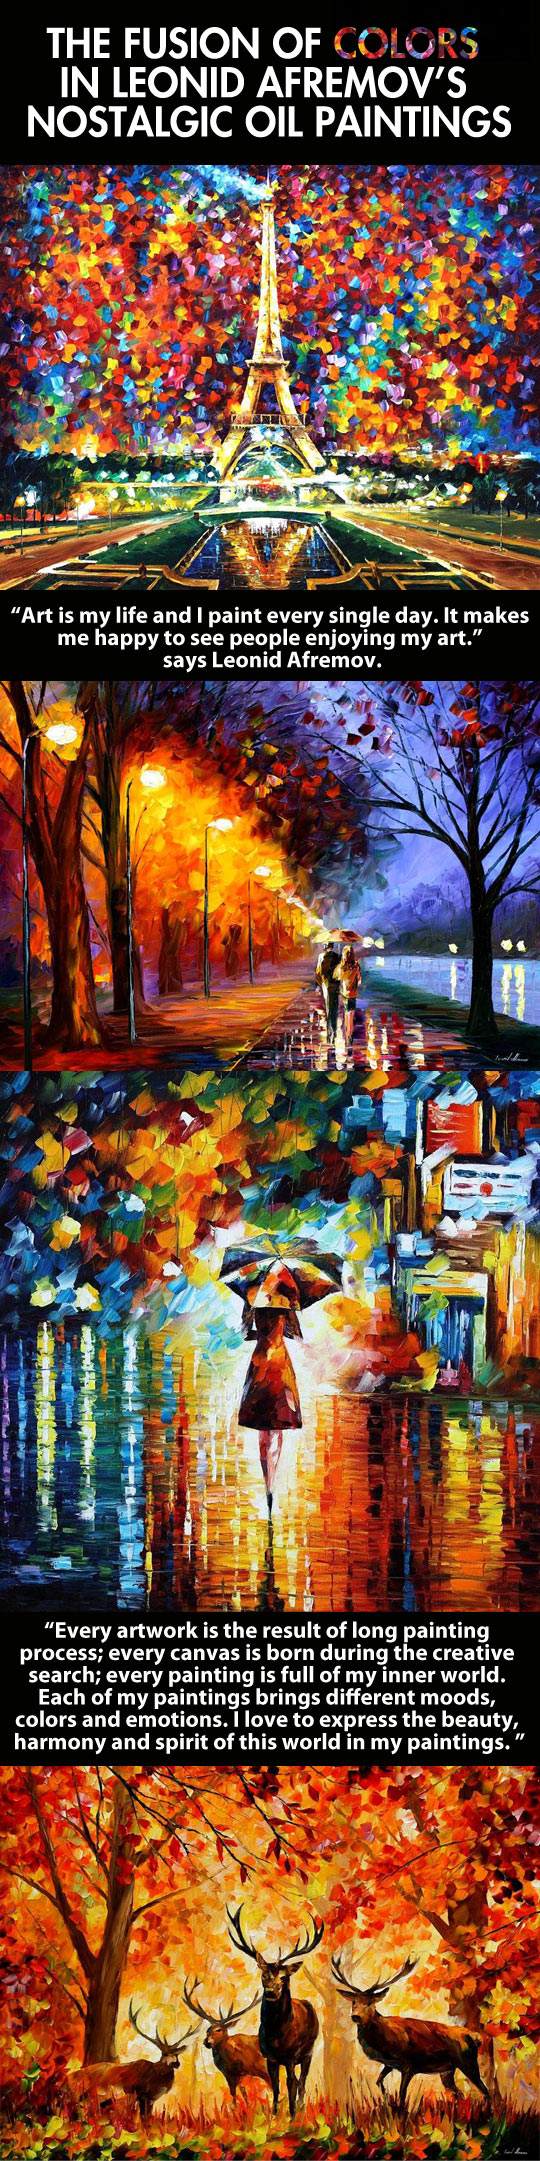 The work of the Russian-Israeli artist Leonid Afremov...